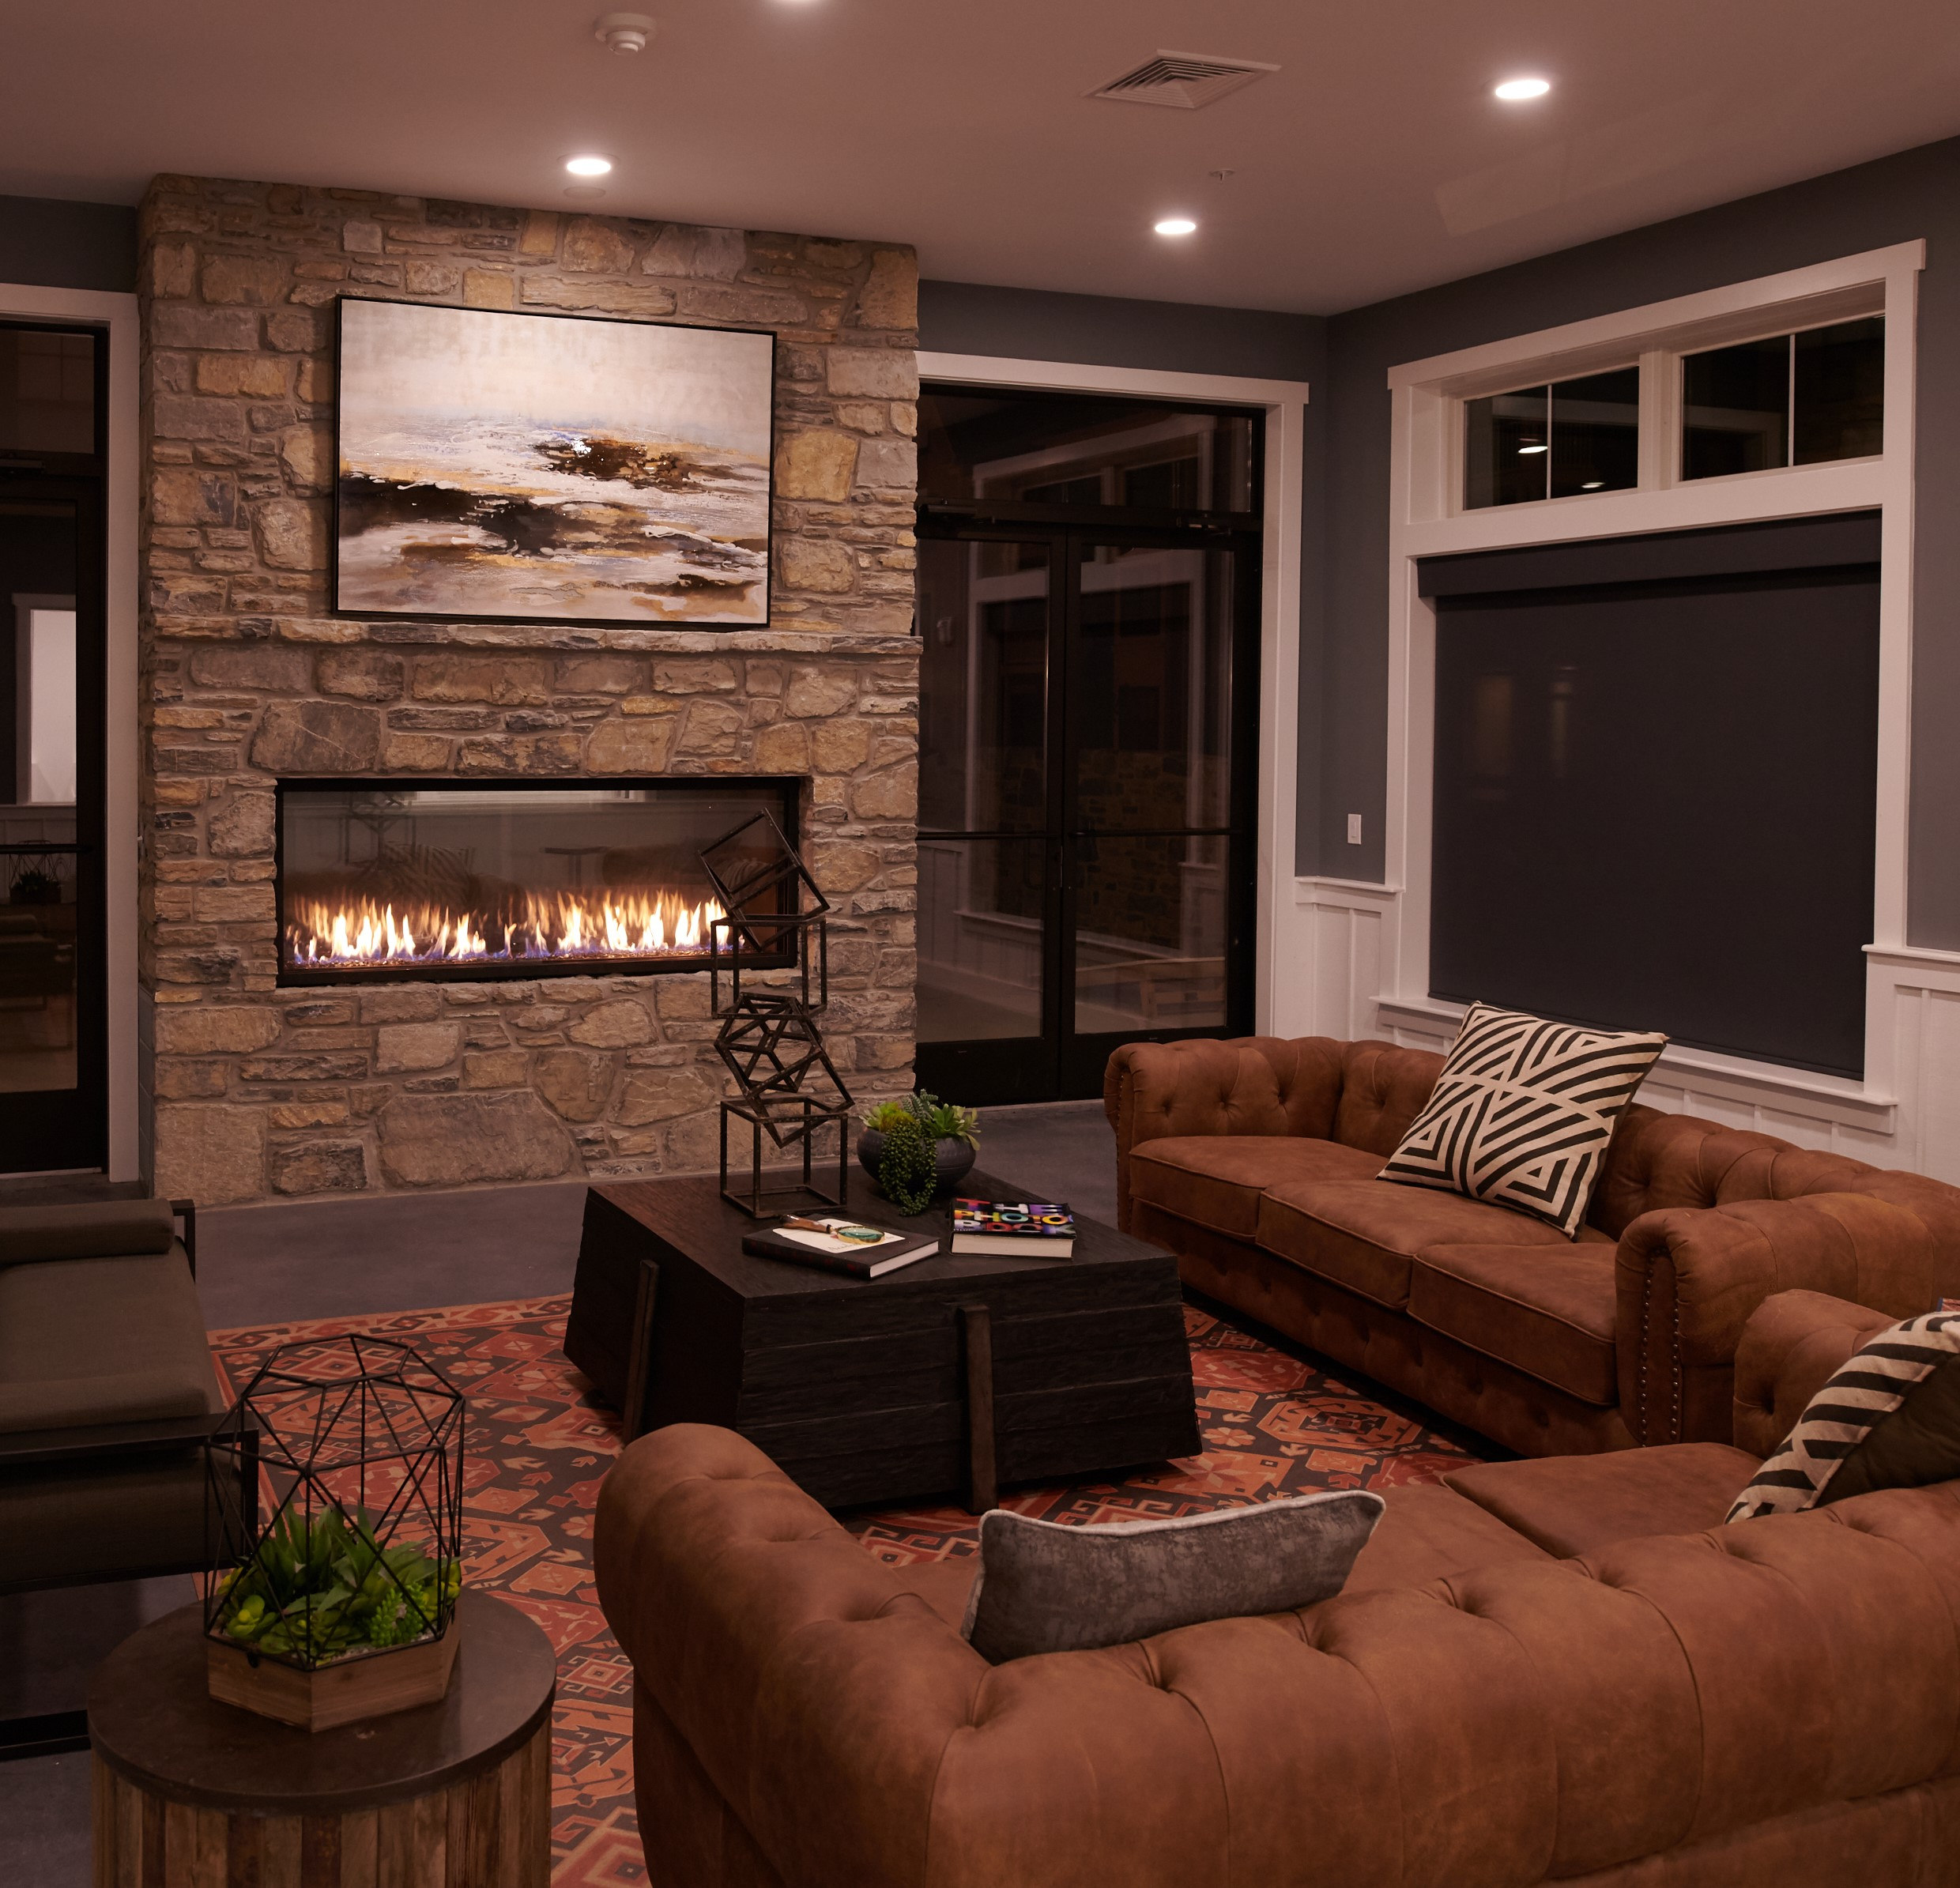 Clubhouse at Verde with fireplace surround by stone, two brown couches, and a dark brown coffee table.